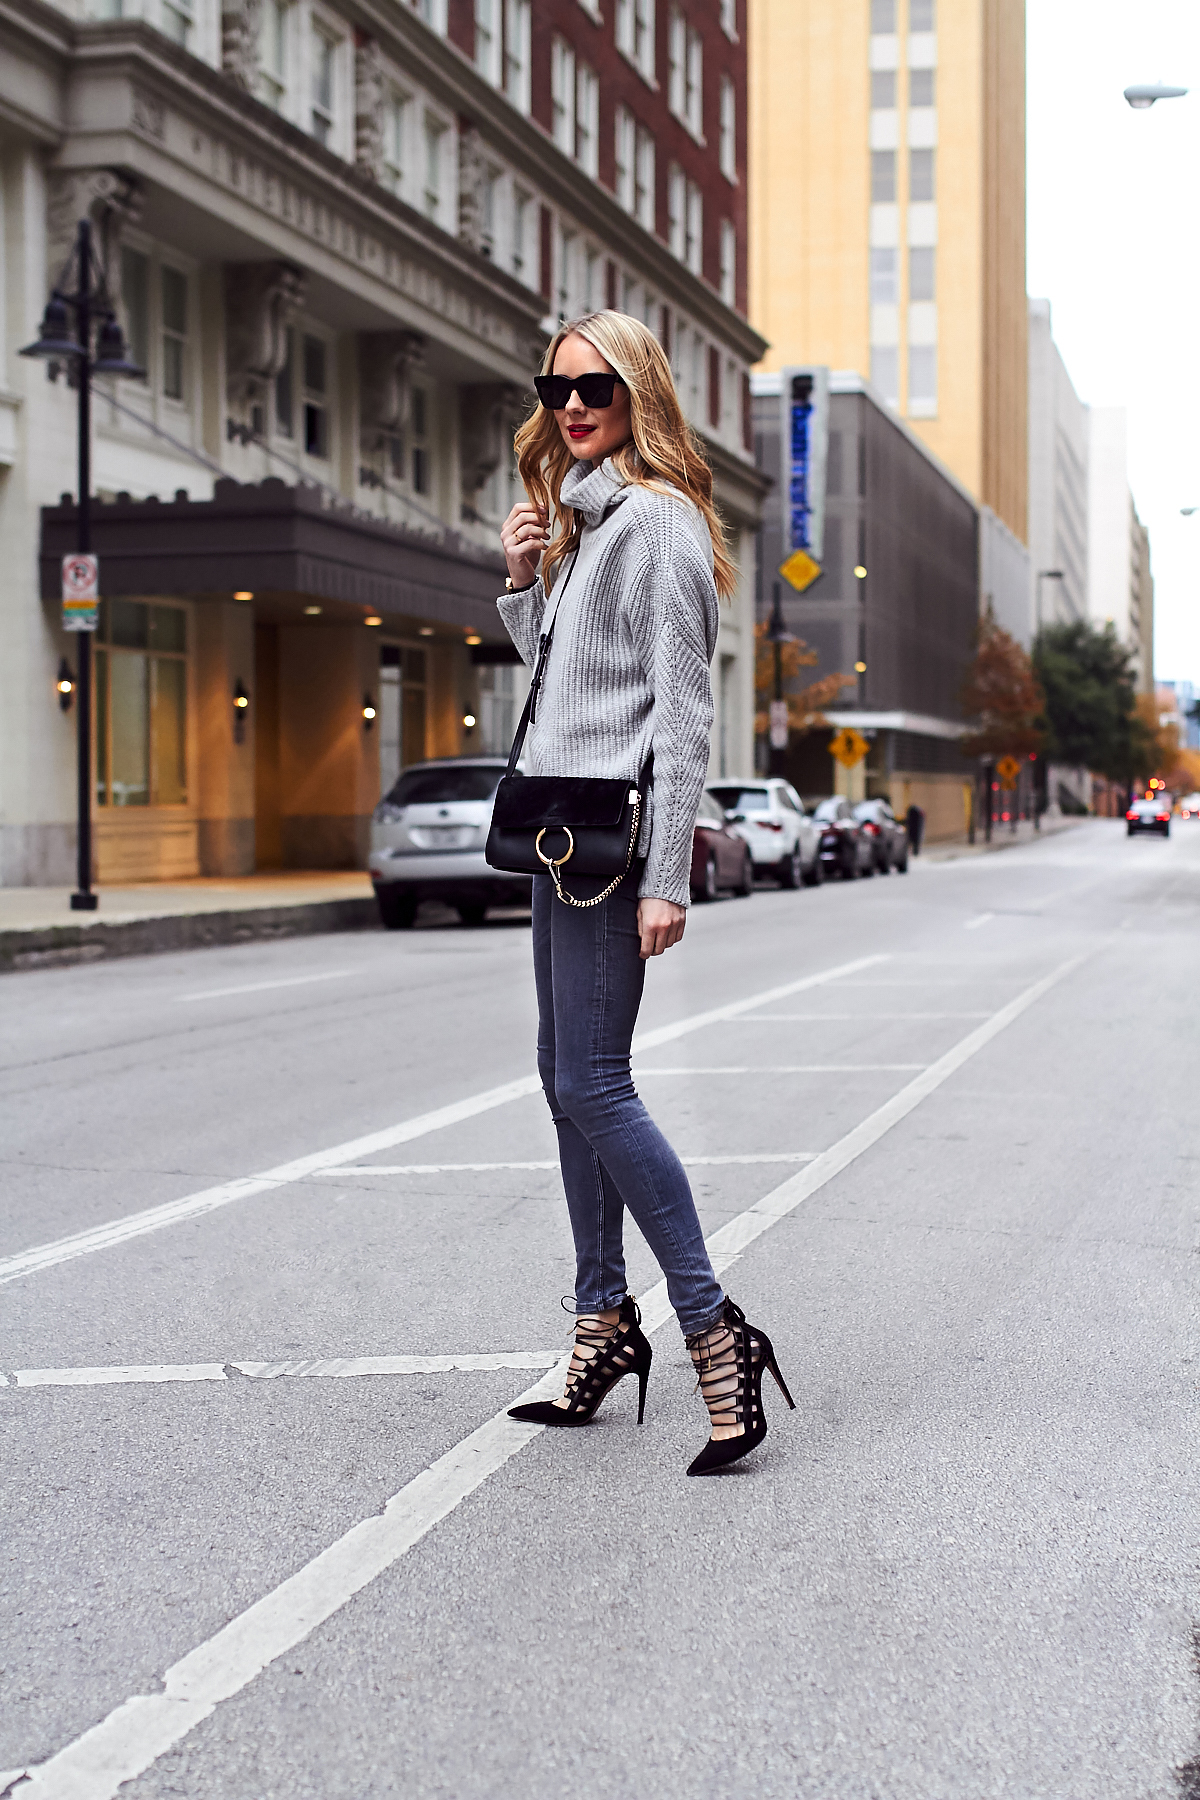 Fall Outfit, Winter Outfit, Chunky Grey Turtleneck Sweater, Grey Skinny Jeans, Aquazzura Amazon Black Pumps, Chloe Faye Black Handbag